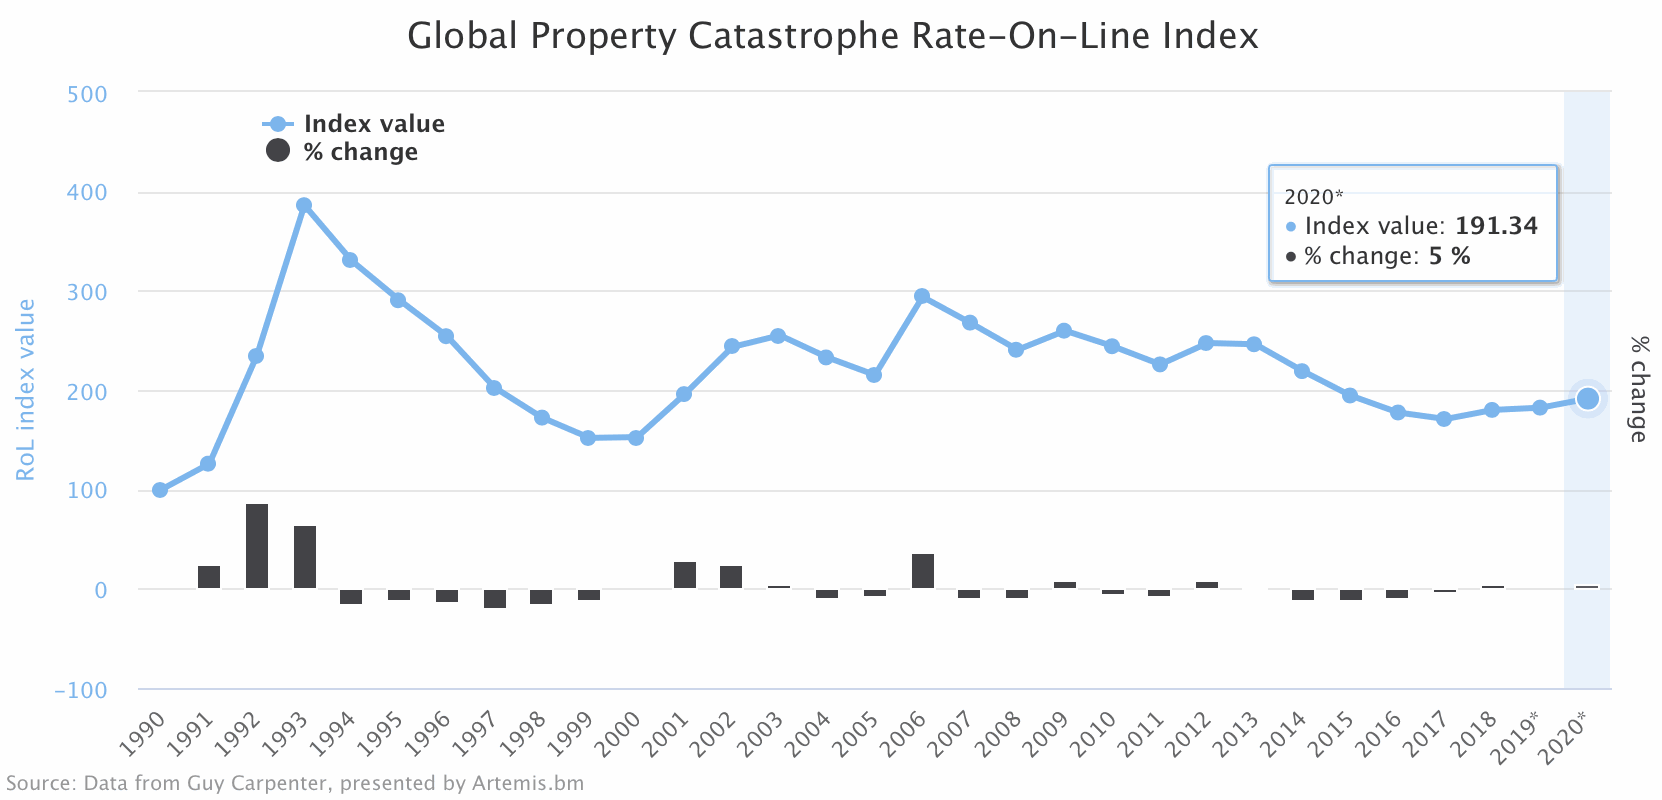 Global Property Catastrophe